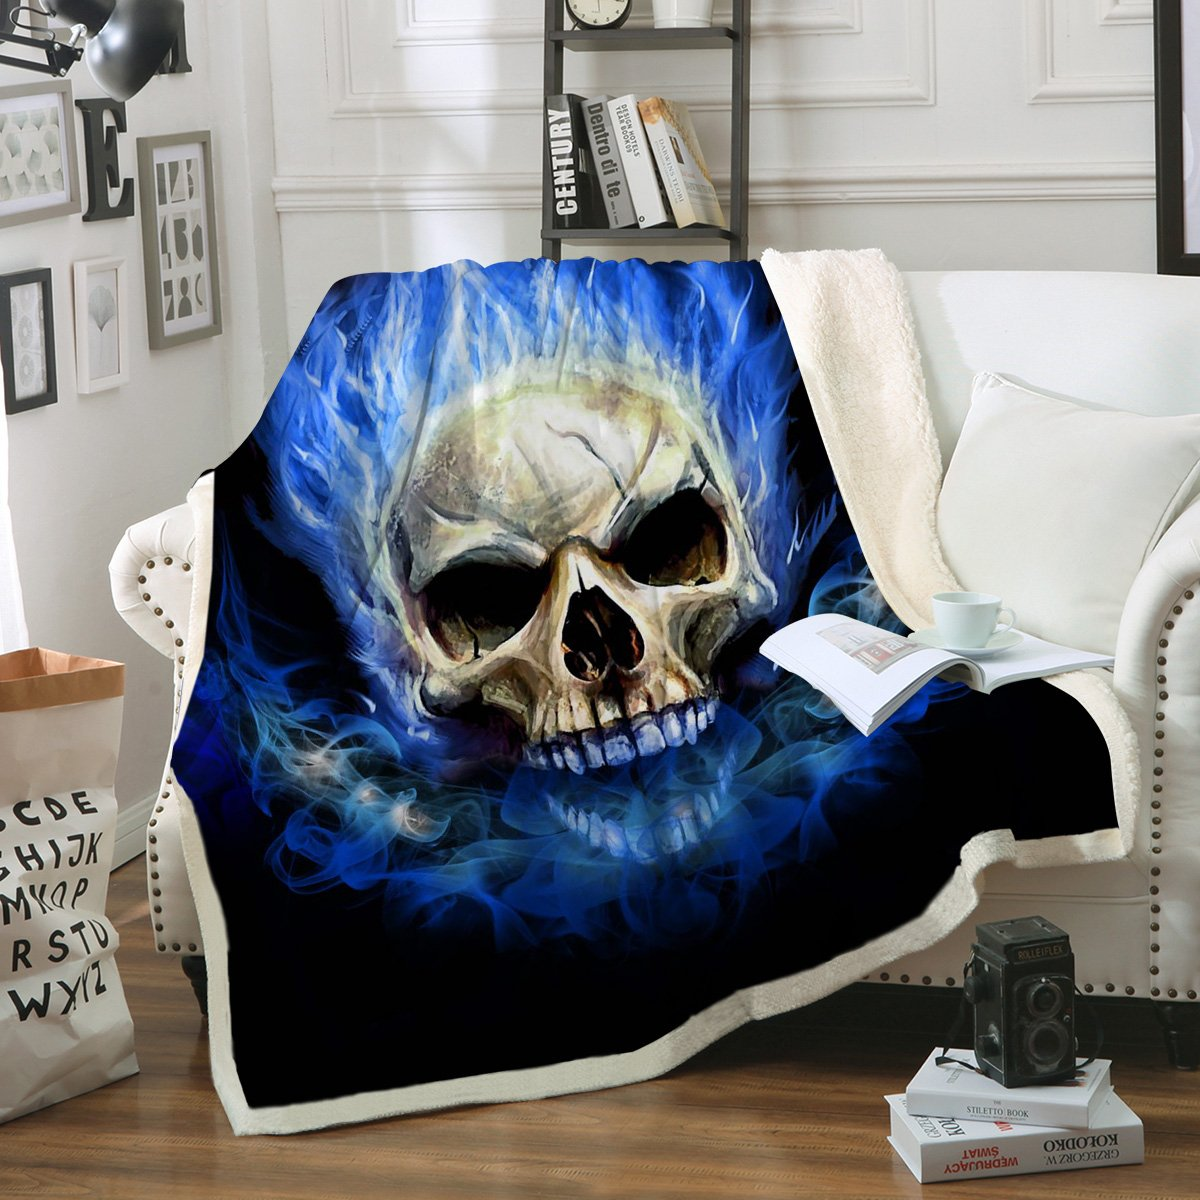 Sleepwish Blue Skull Fire Kids Throw Blanket Sherpa Flannel Fleece Reversible Blanket College Dorm Warm Blanket for Boys (50'' x 60'')